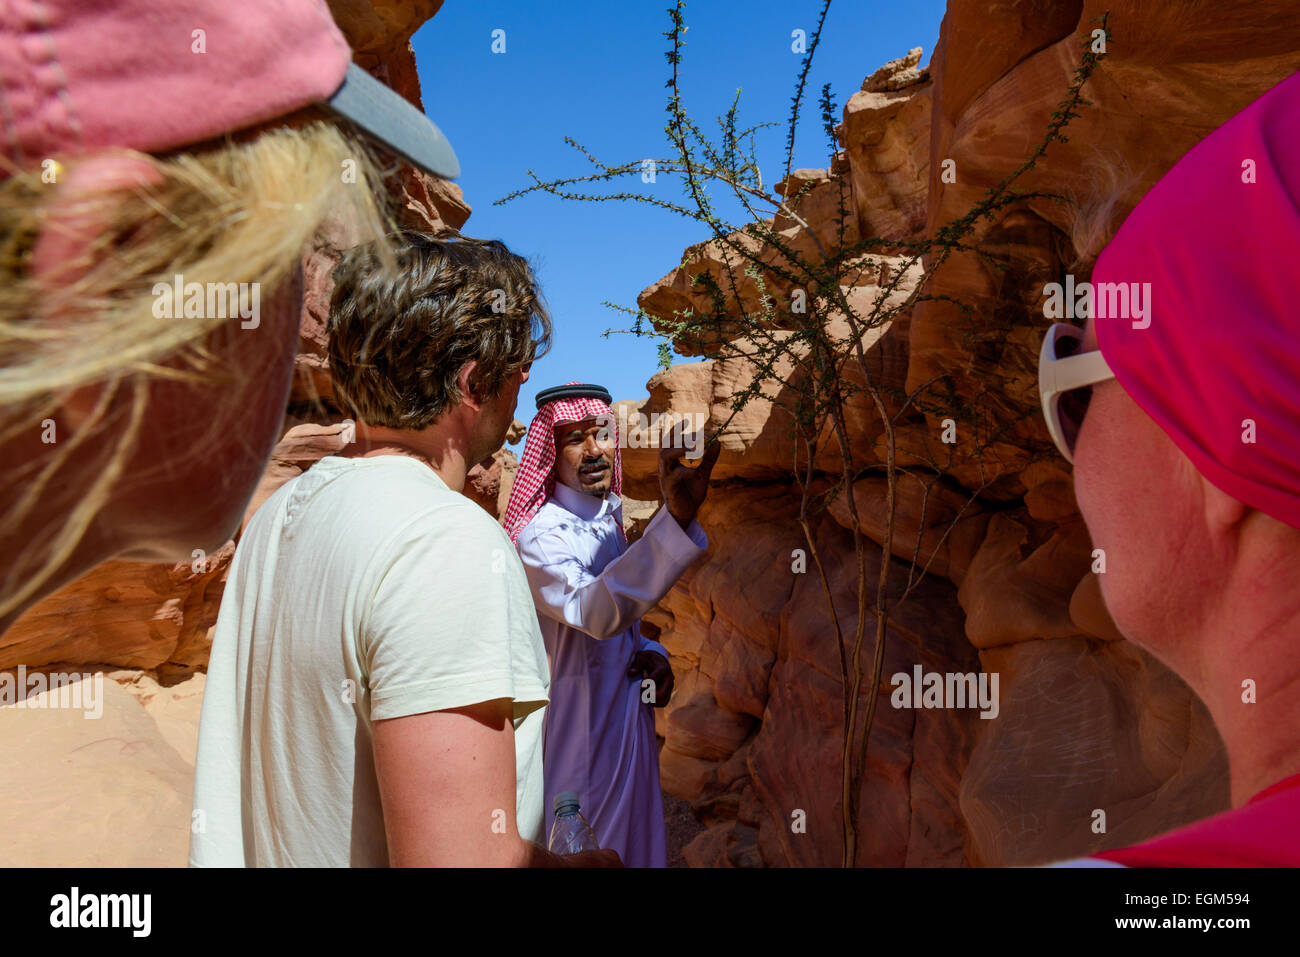 Guide showing local plants to a group of tourists in Colored Canyon, Egypt. - Stock Image